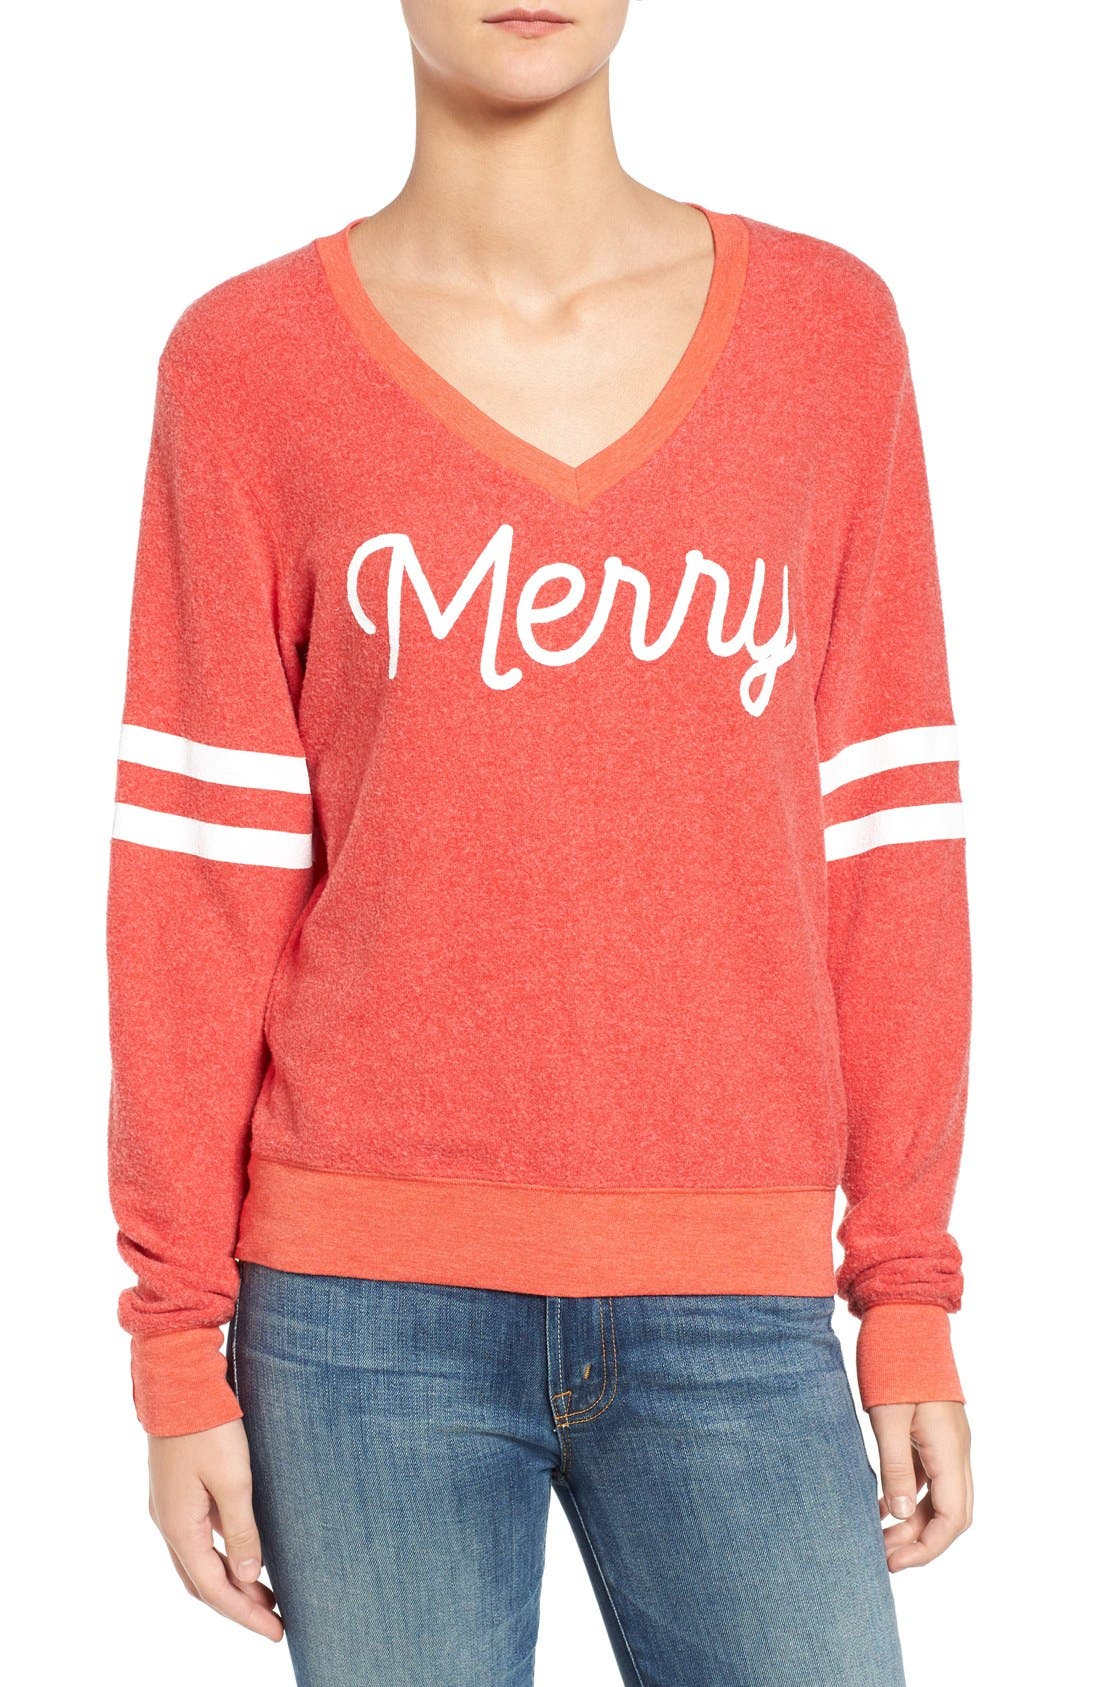 Baggy Beach Jumper - Merry Pullover, Main, color, 620